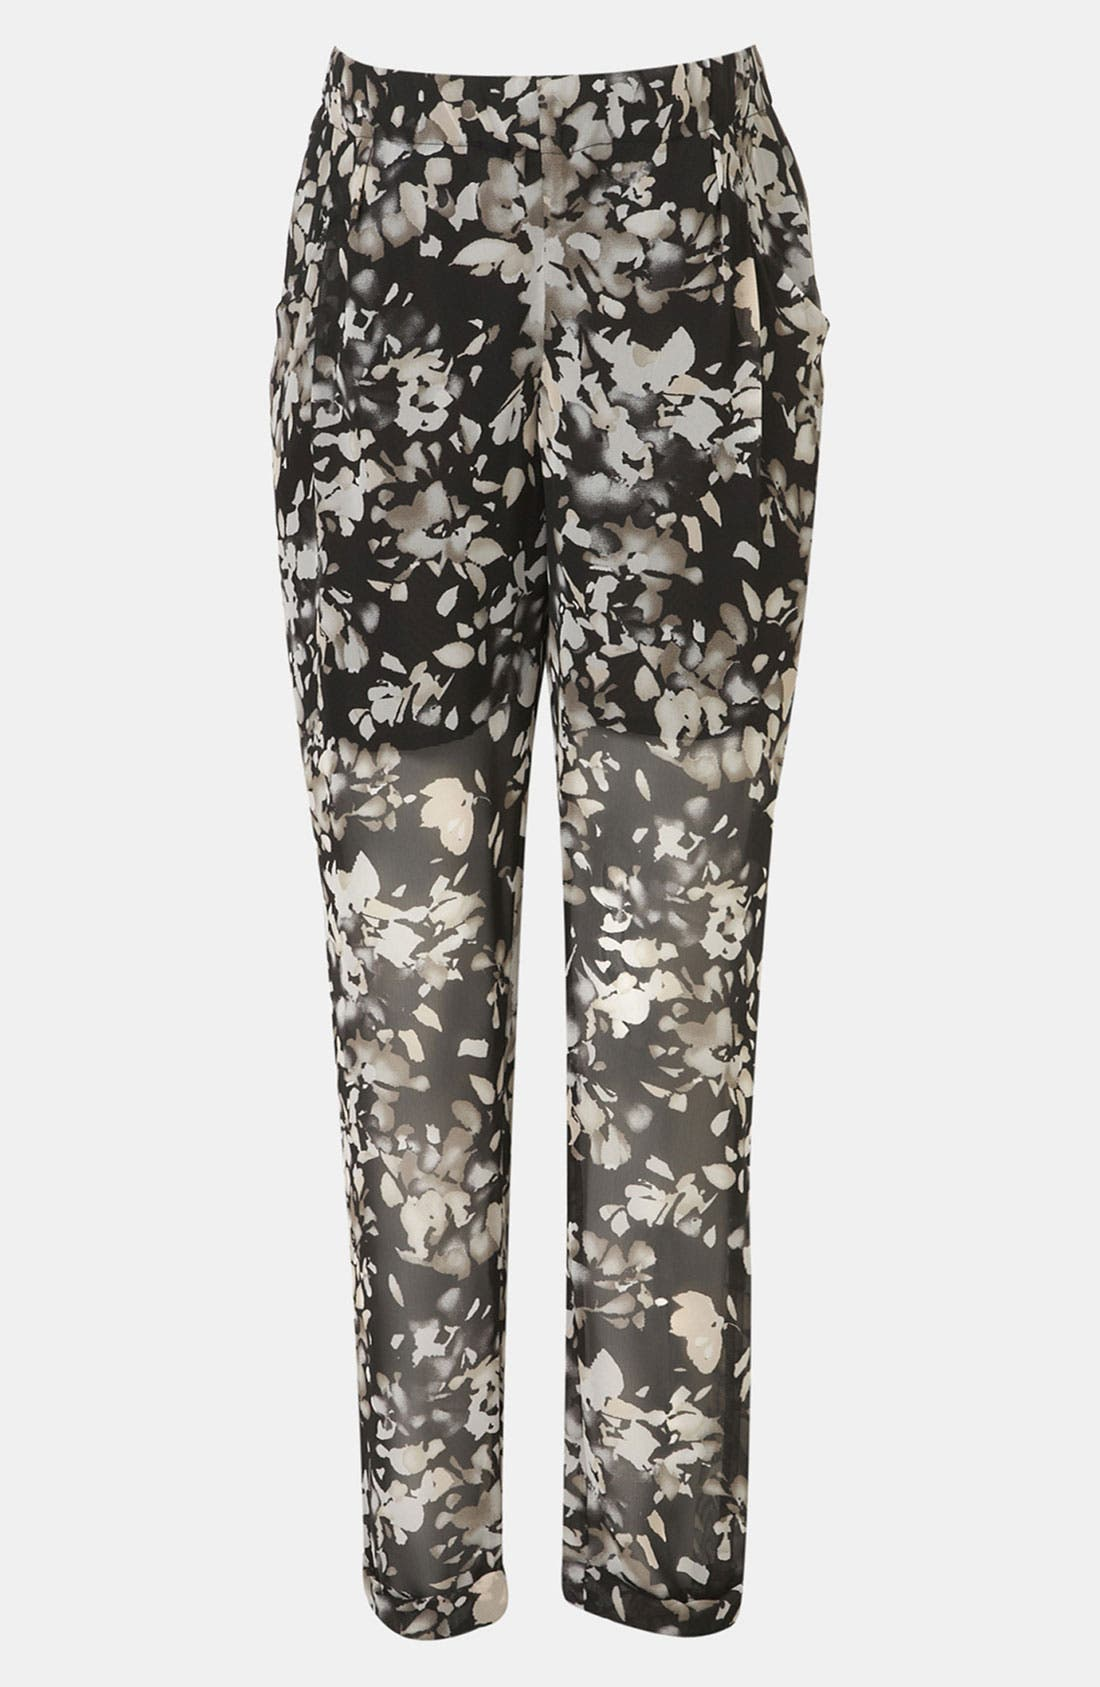 Main Image - Topshop 'Shadow Floral' Sheer Chiffon Maternity Trousers